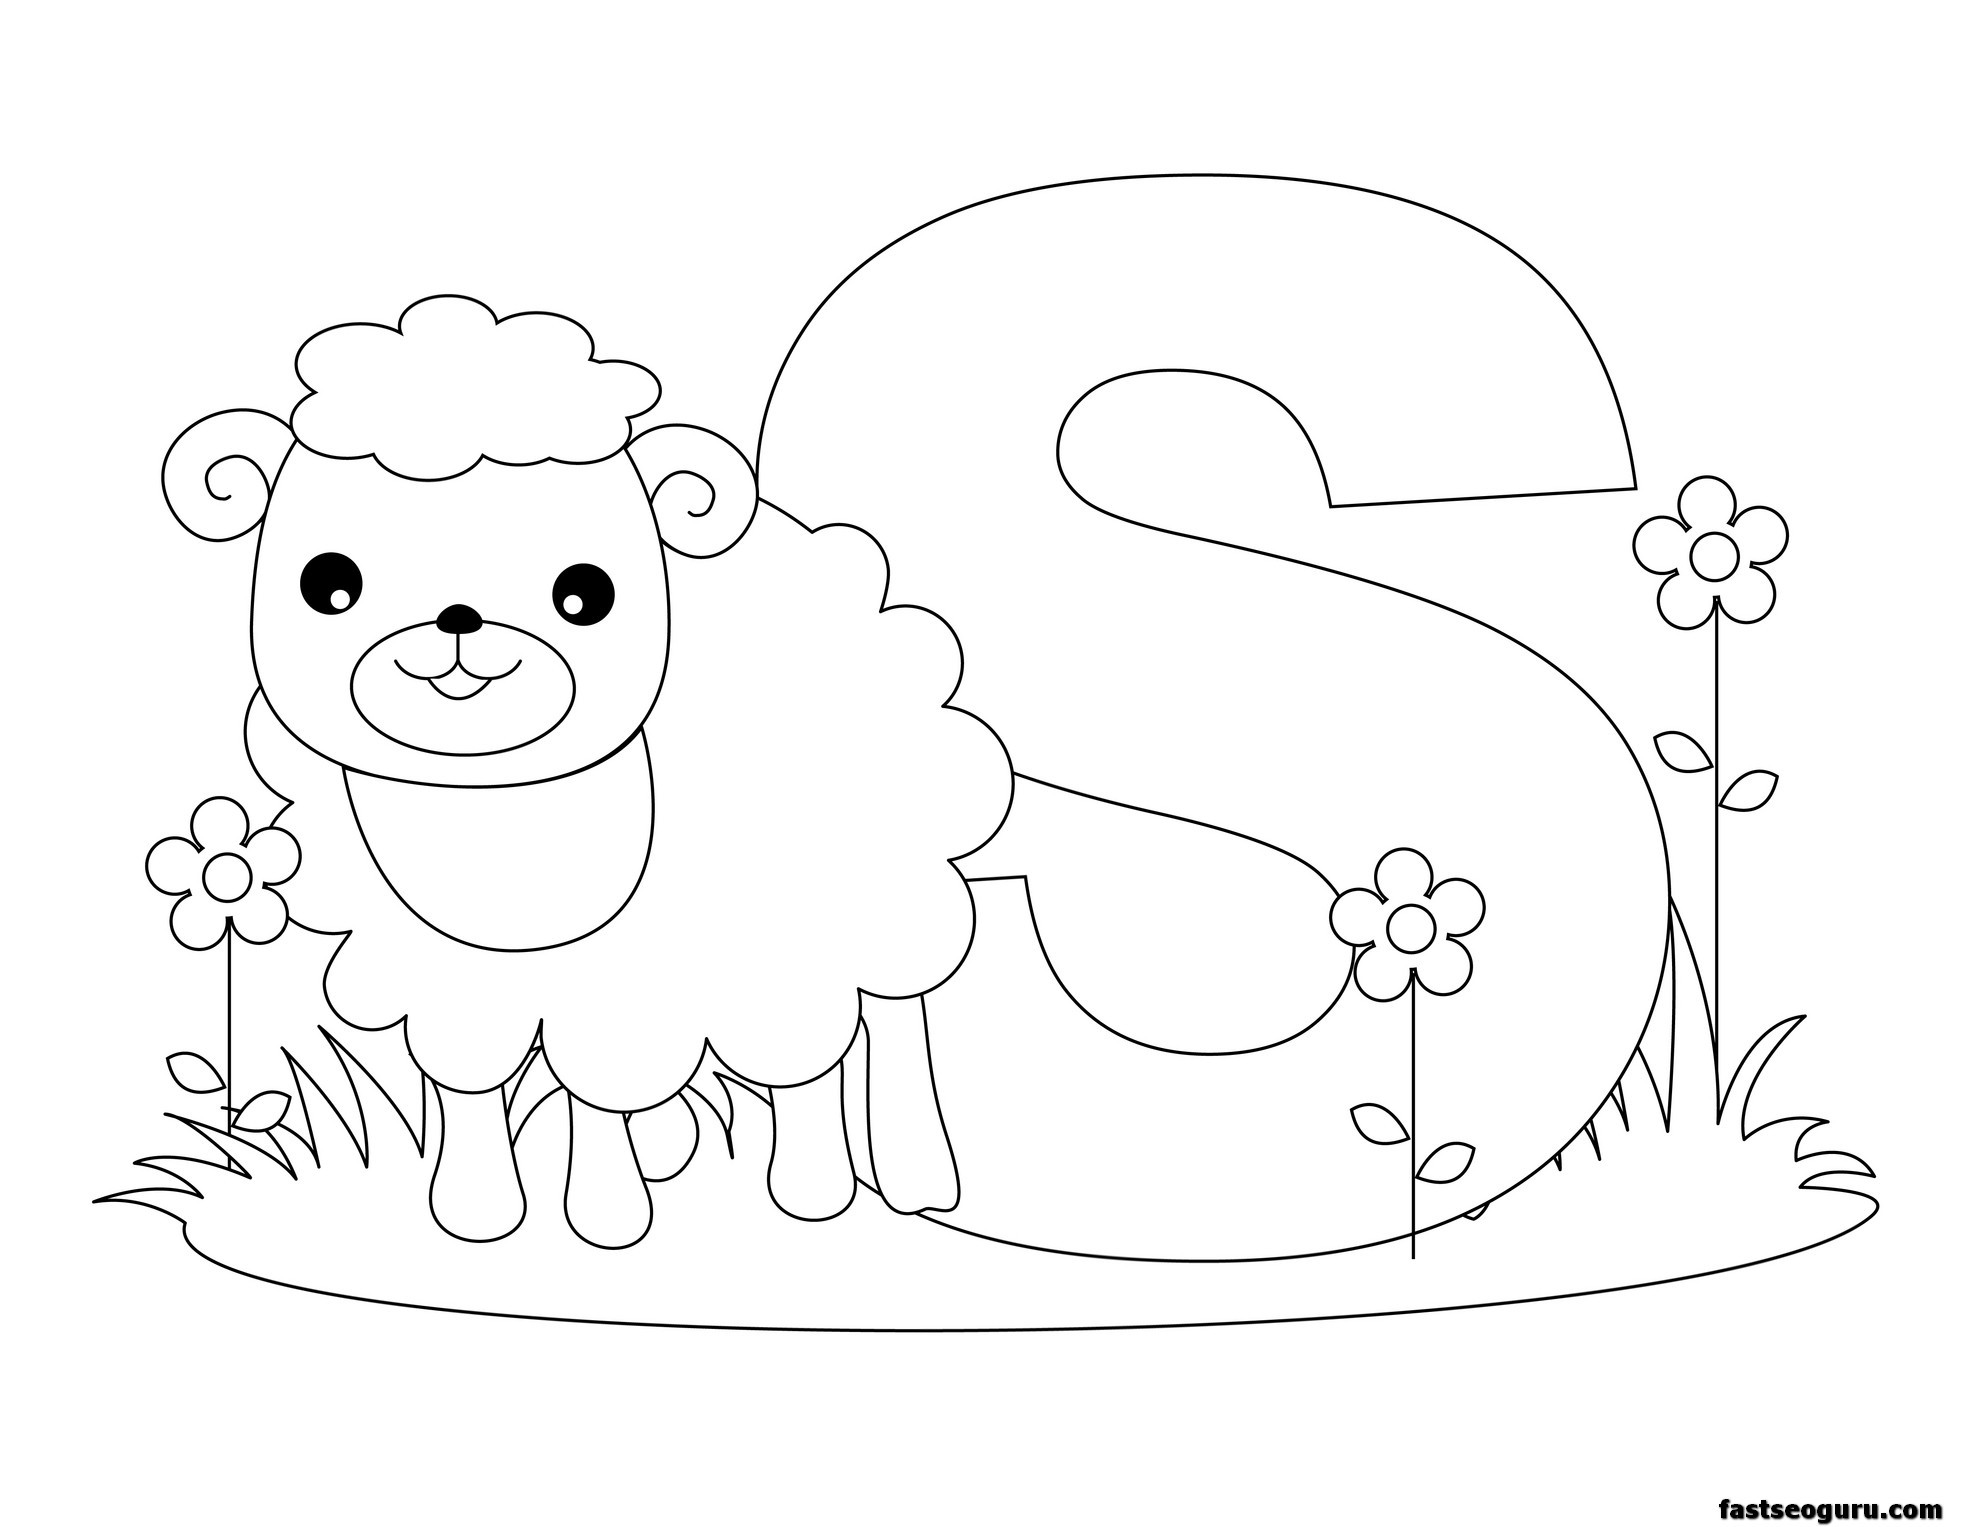 Animal Alphabet Coloring Book Printable | Coloring Page